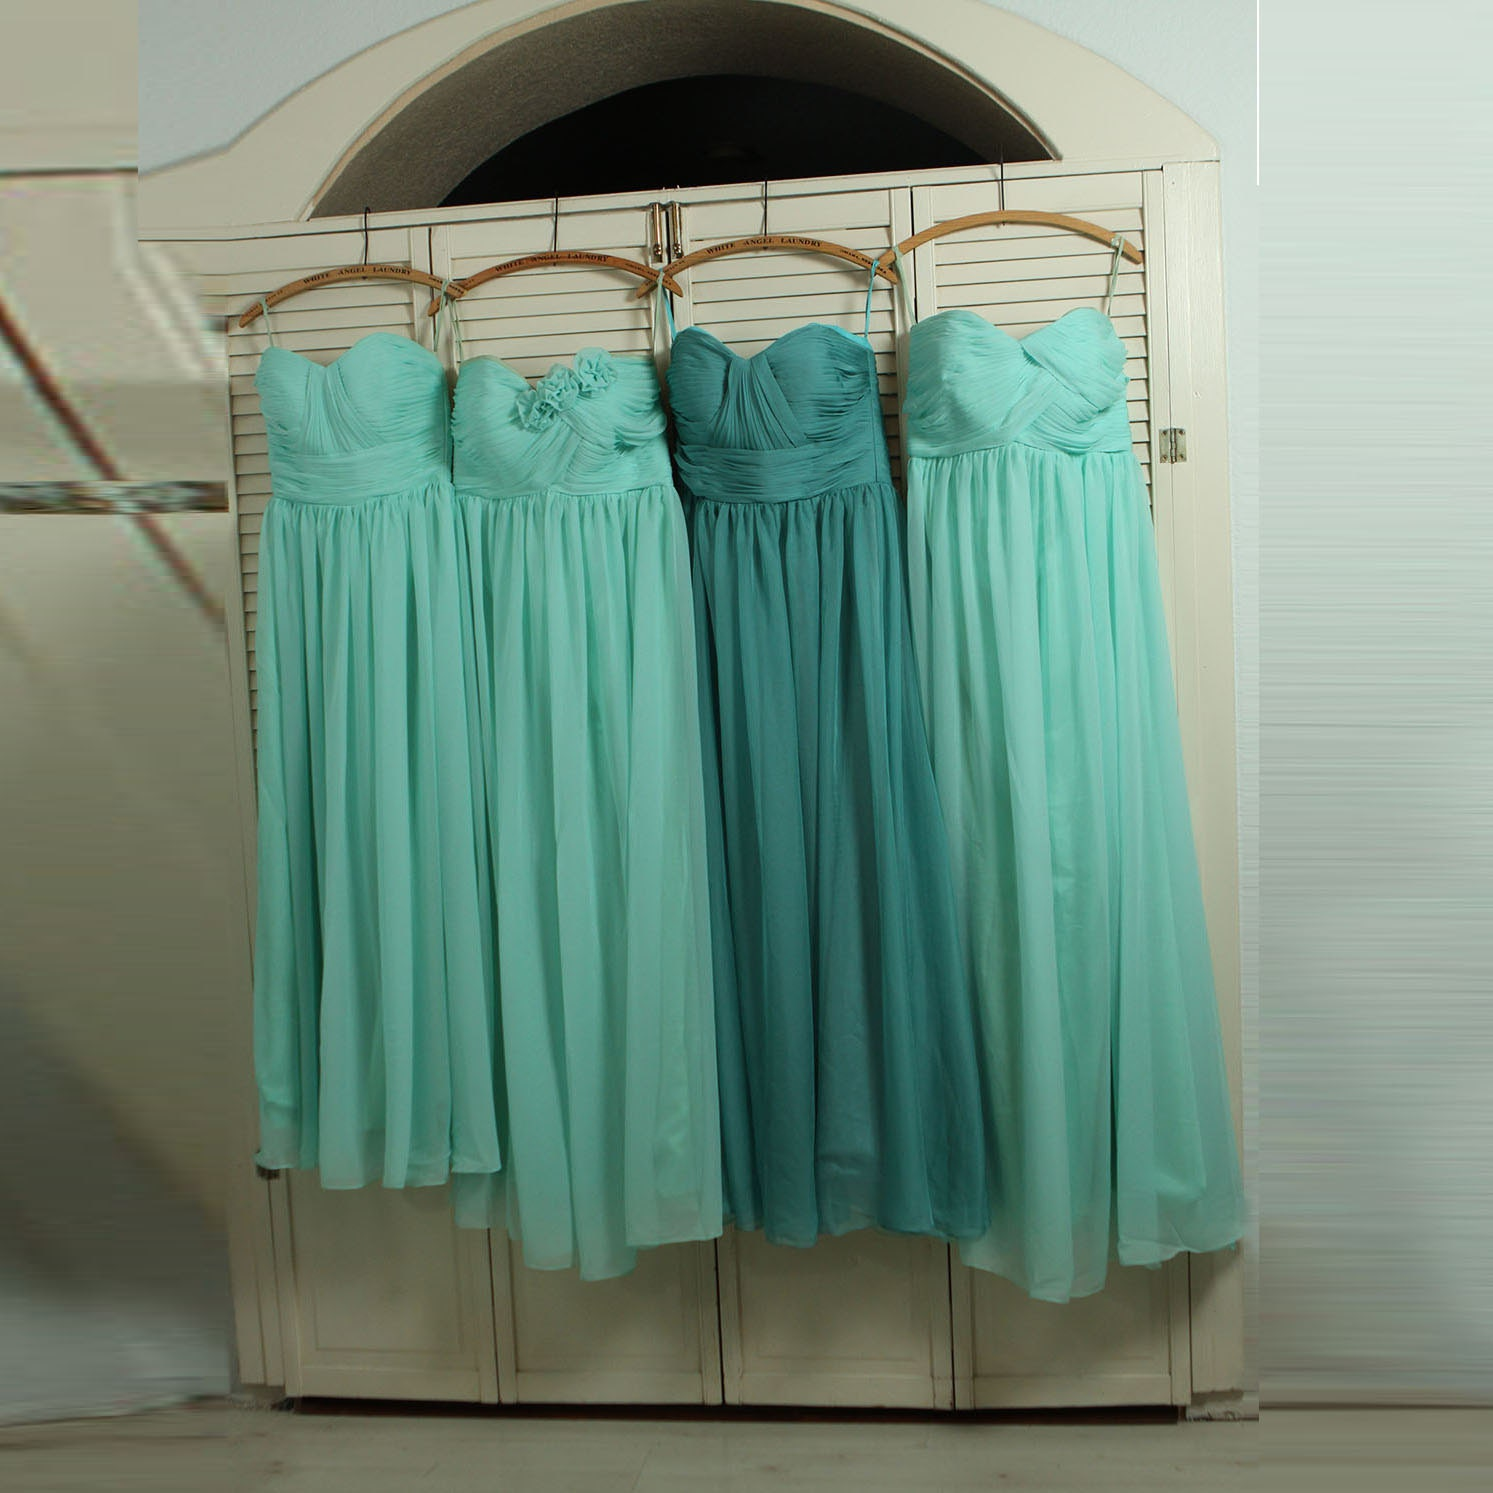 2017 Bridesmaid Dress Teal Mix and Match Prom Dress Dusty